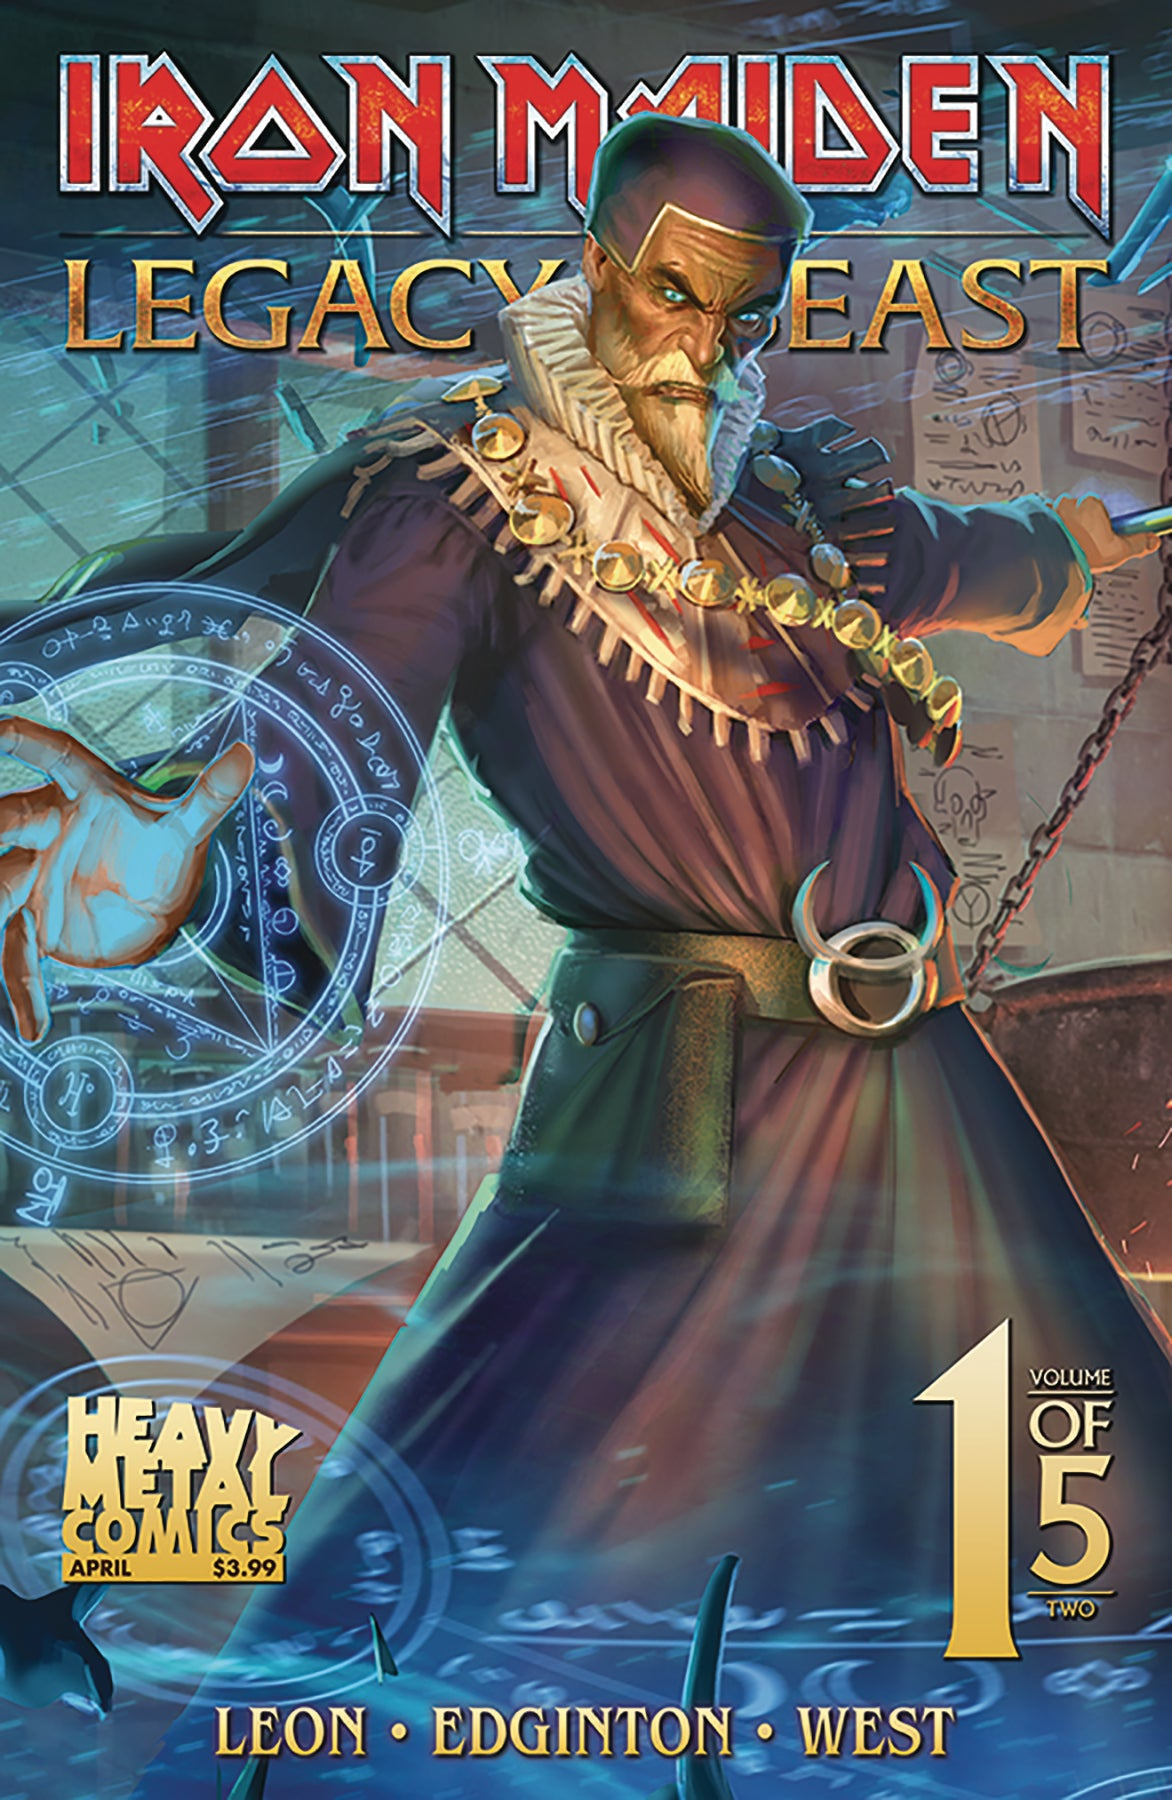 Iron Maiden Legacy of the Beast Vol2 - Night City - Issue #1 - Cover C